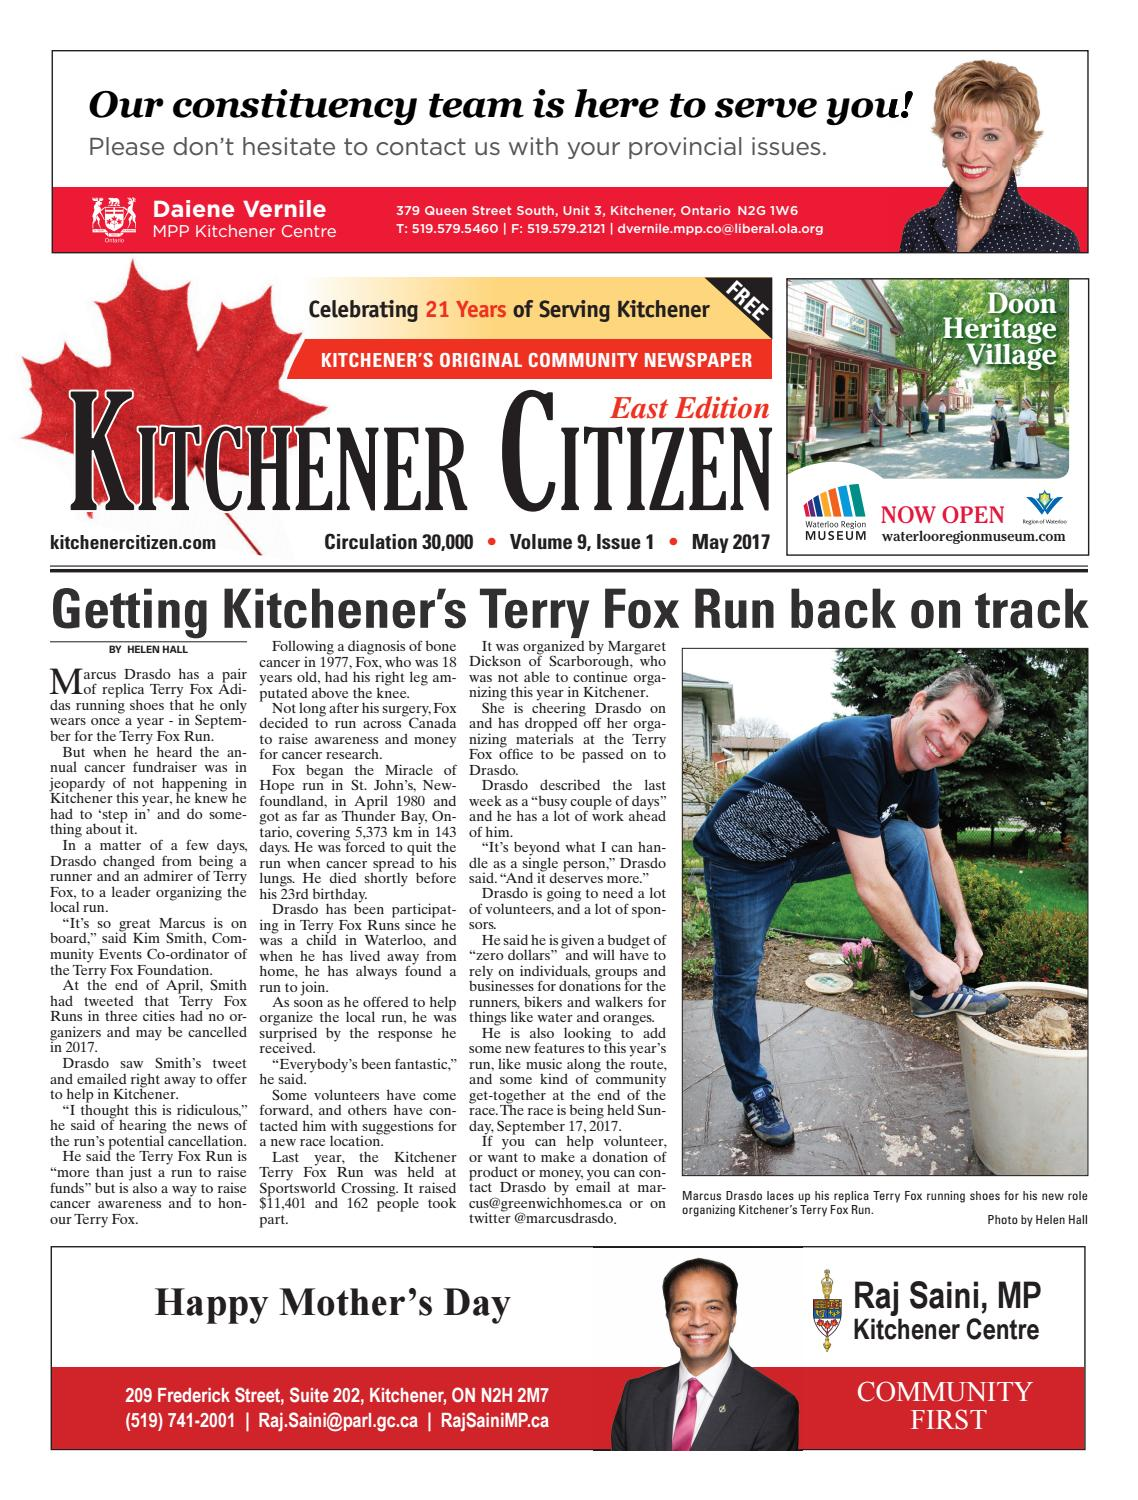 Kitchener Citizen - West Edition - May 2017 by Kitchener Citizen - issuu